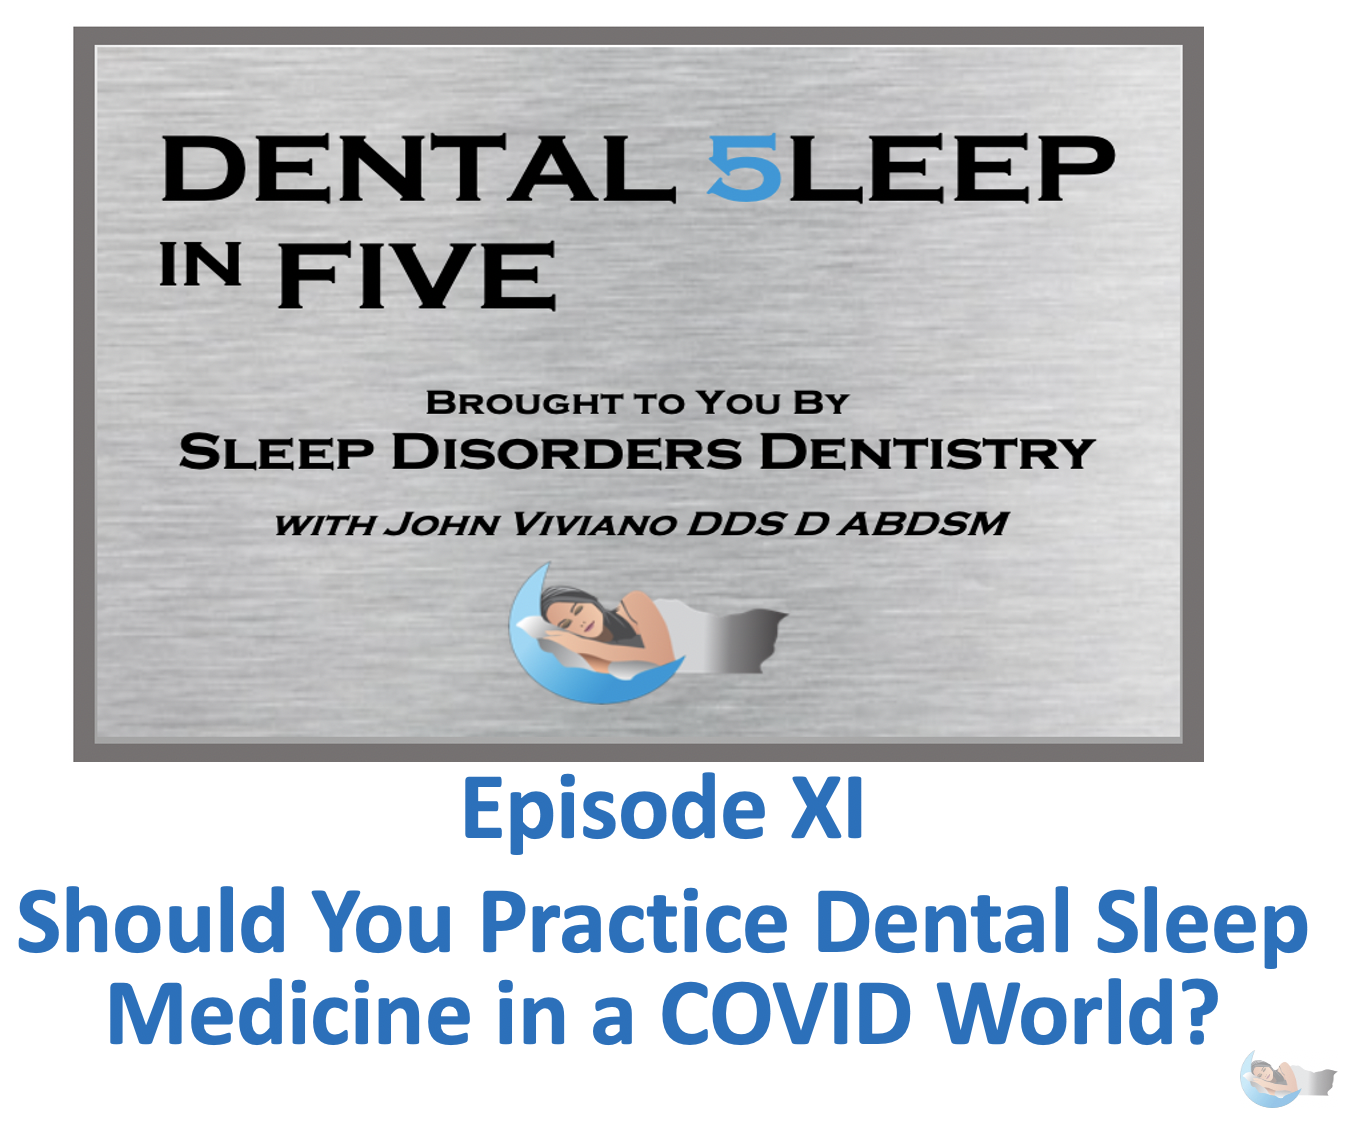 Dental 5leep in FIVE